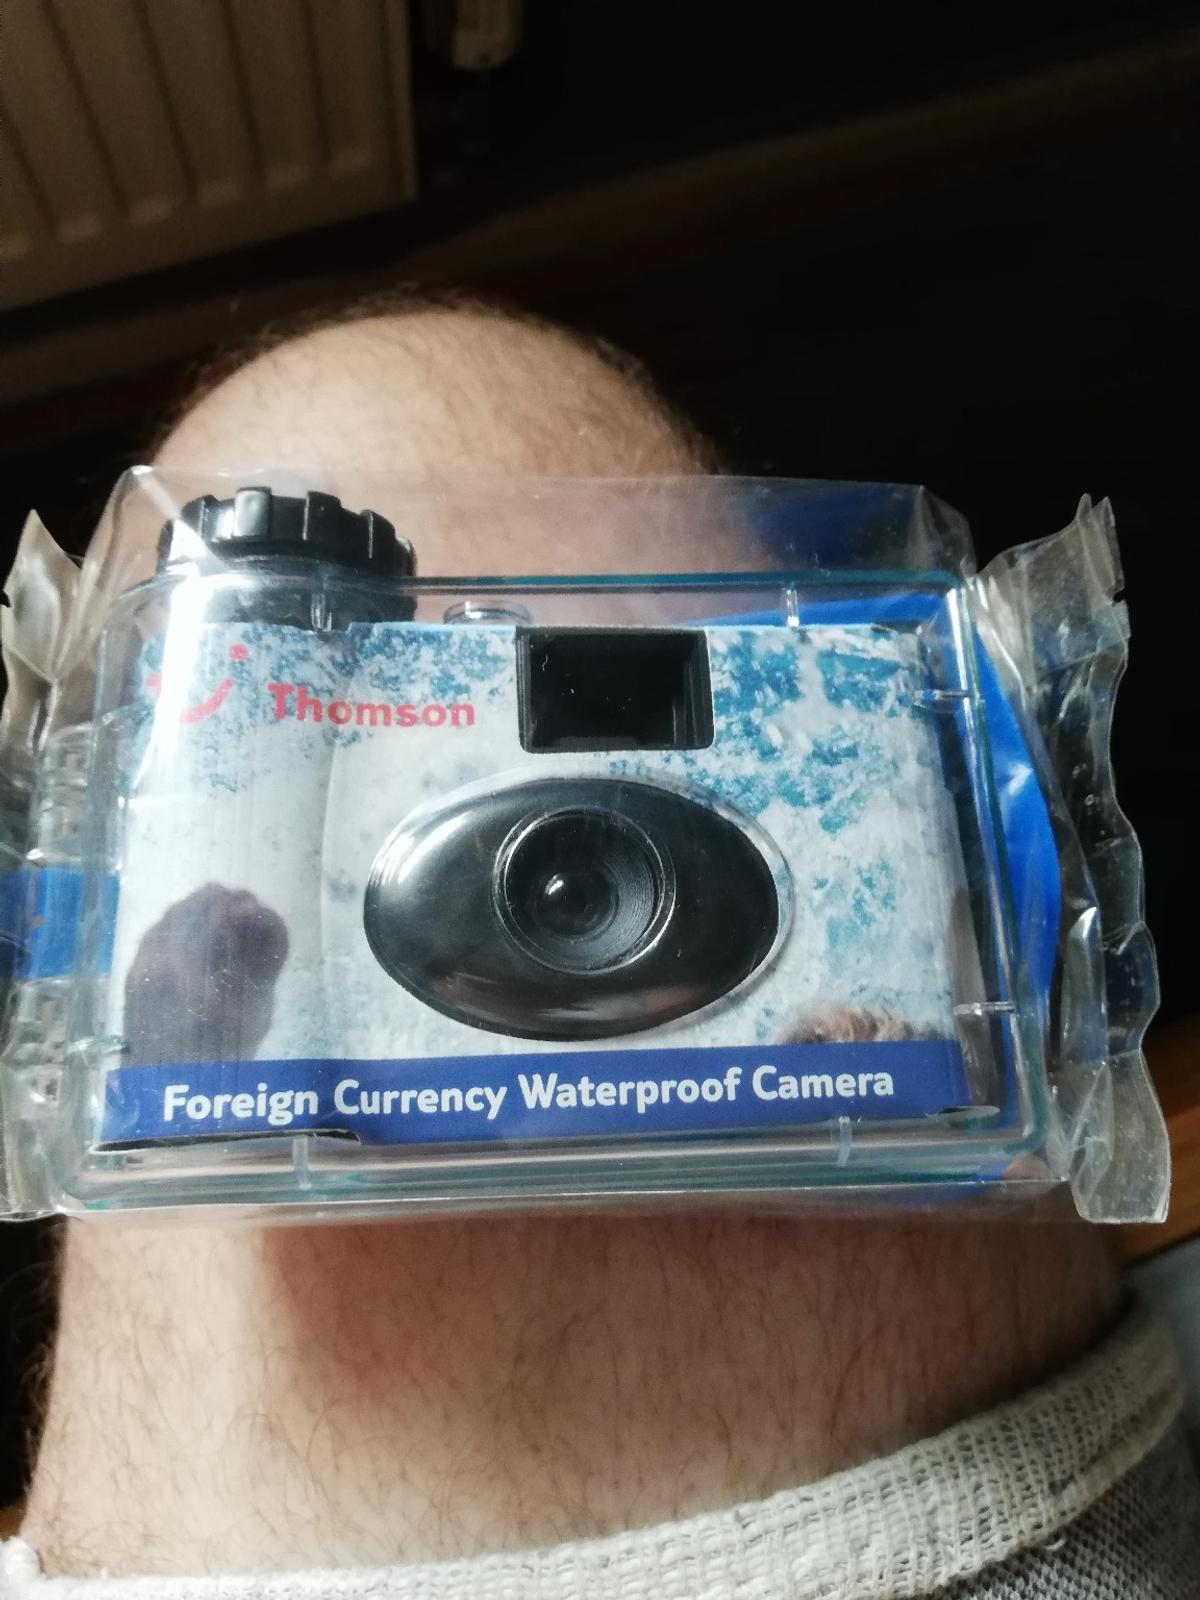 Thomson's holidays, now TUI, gave away these waterproof cameras when you booked, years and years ago. full working order, still boxed, immaculate condition. £15